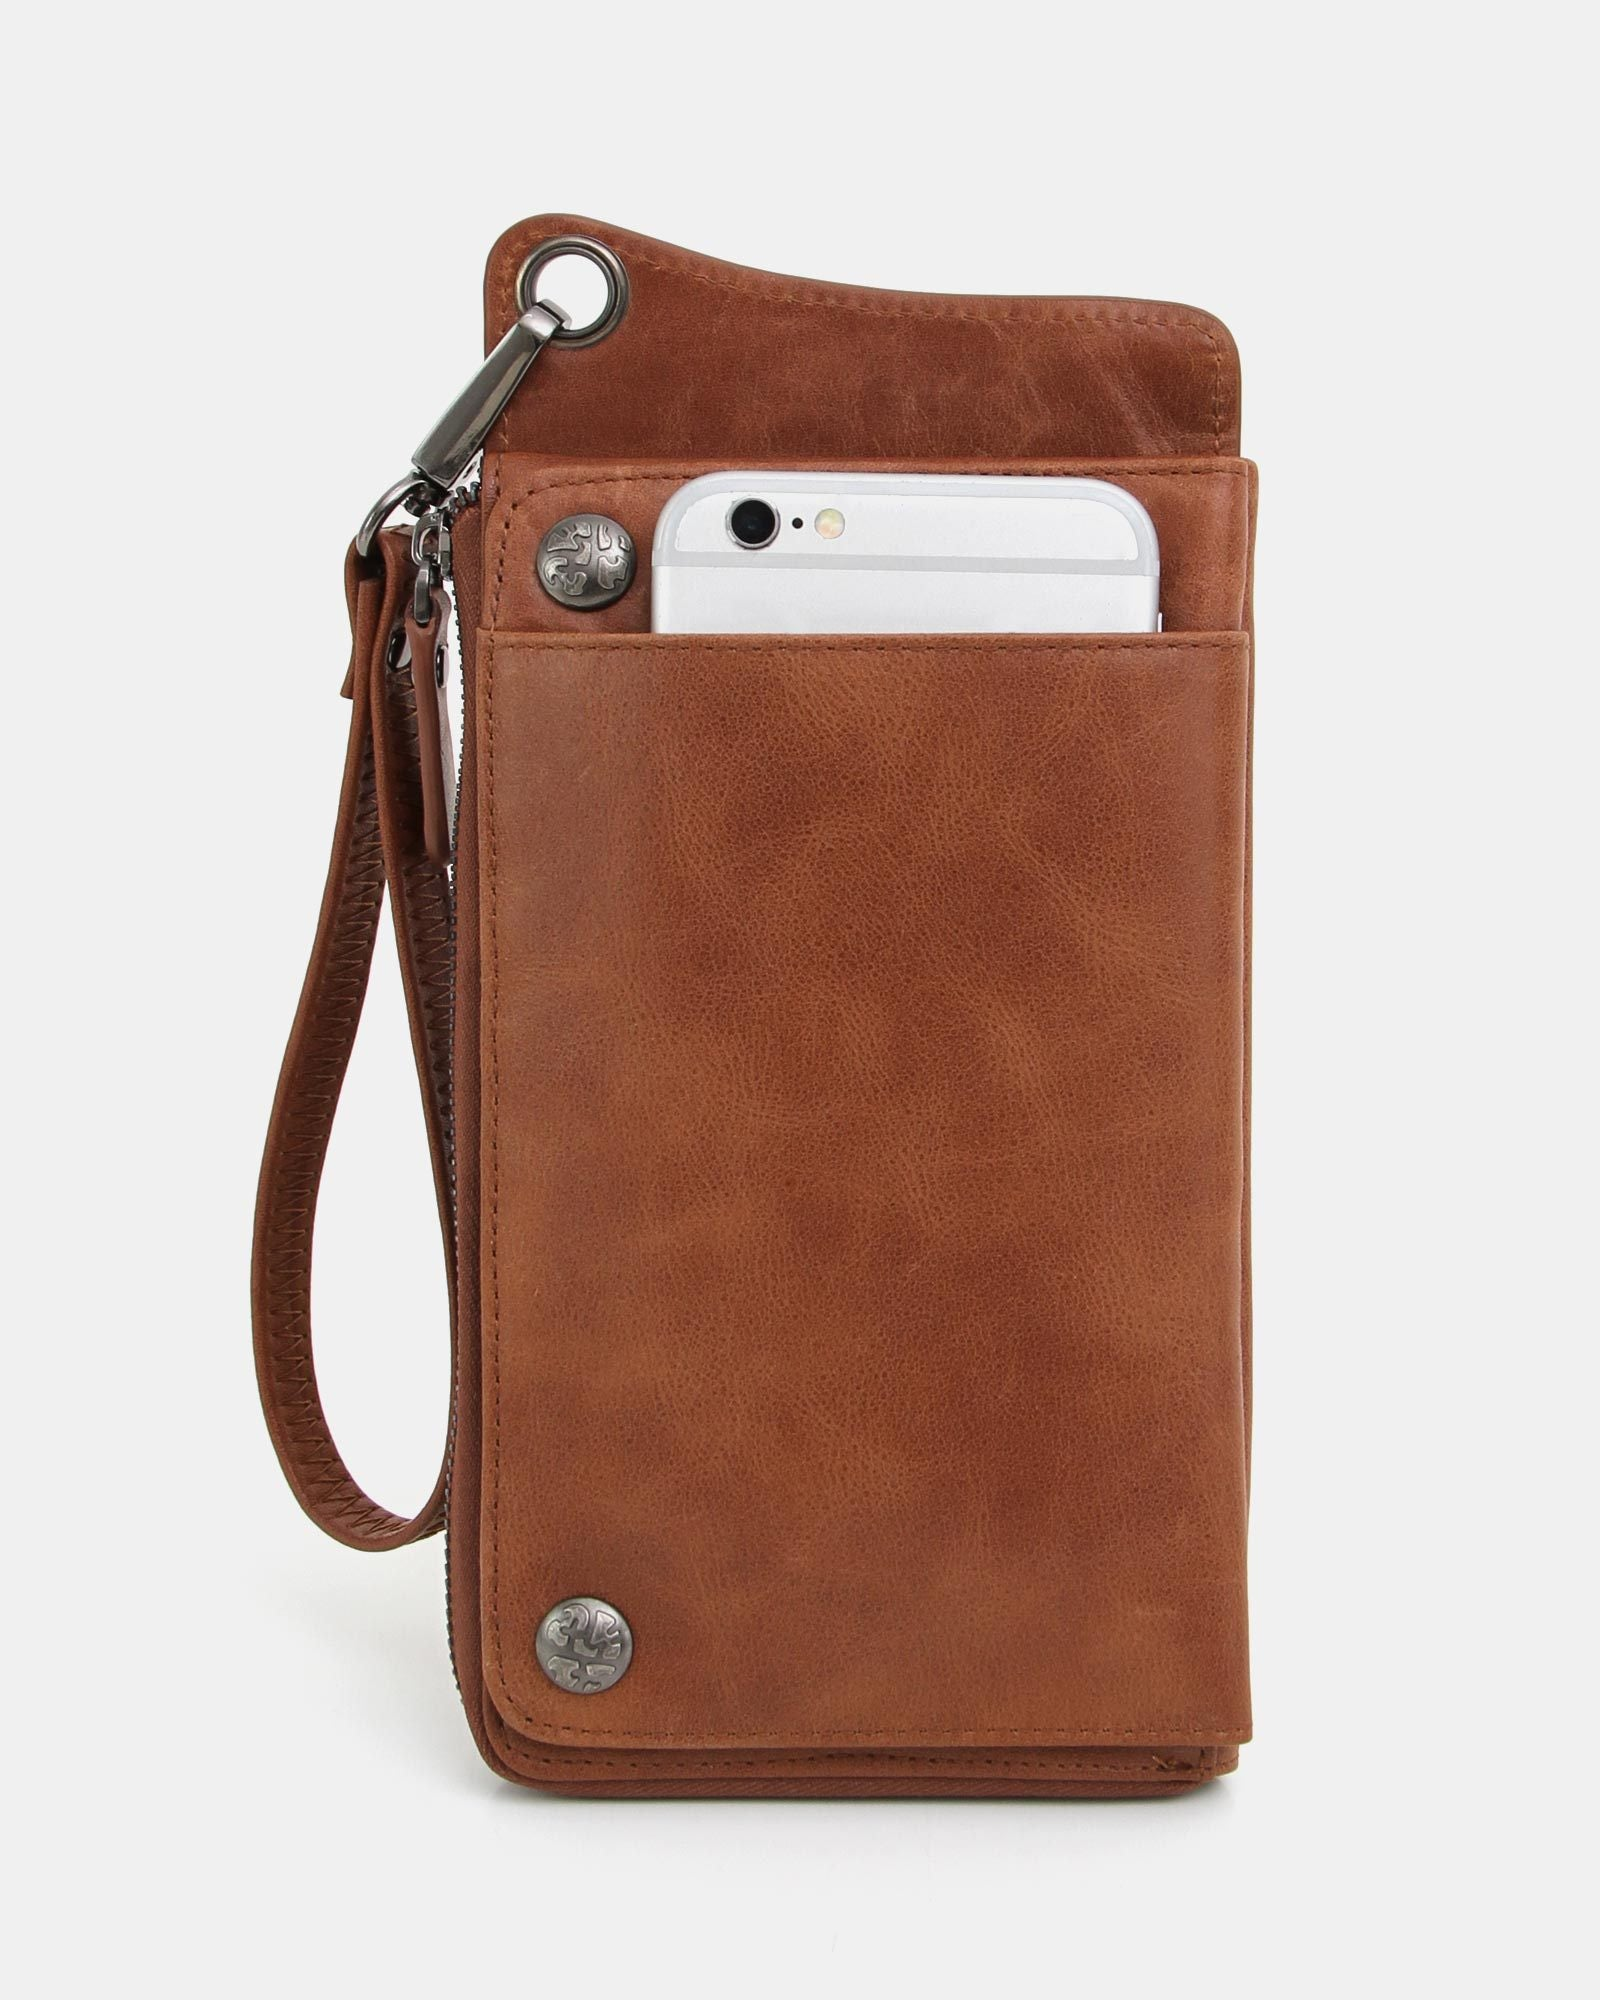 brown-leather-wallet-with-phne-pocket.jpg